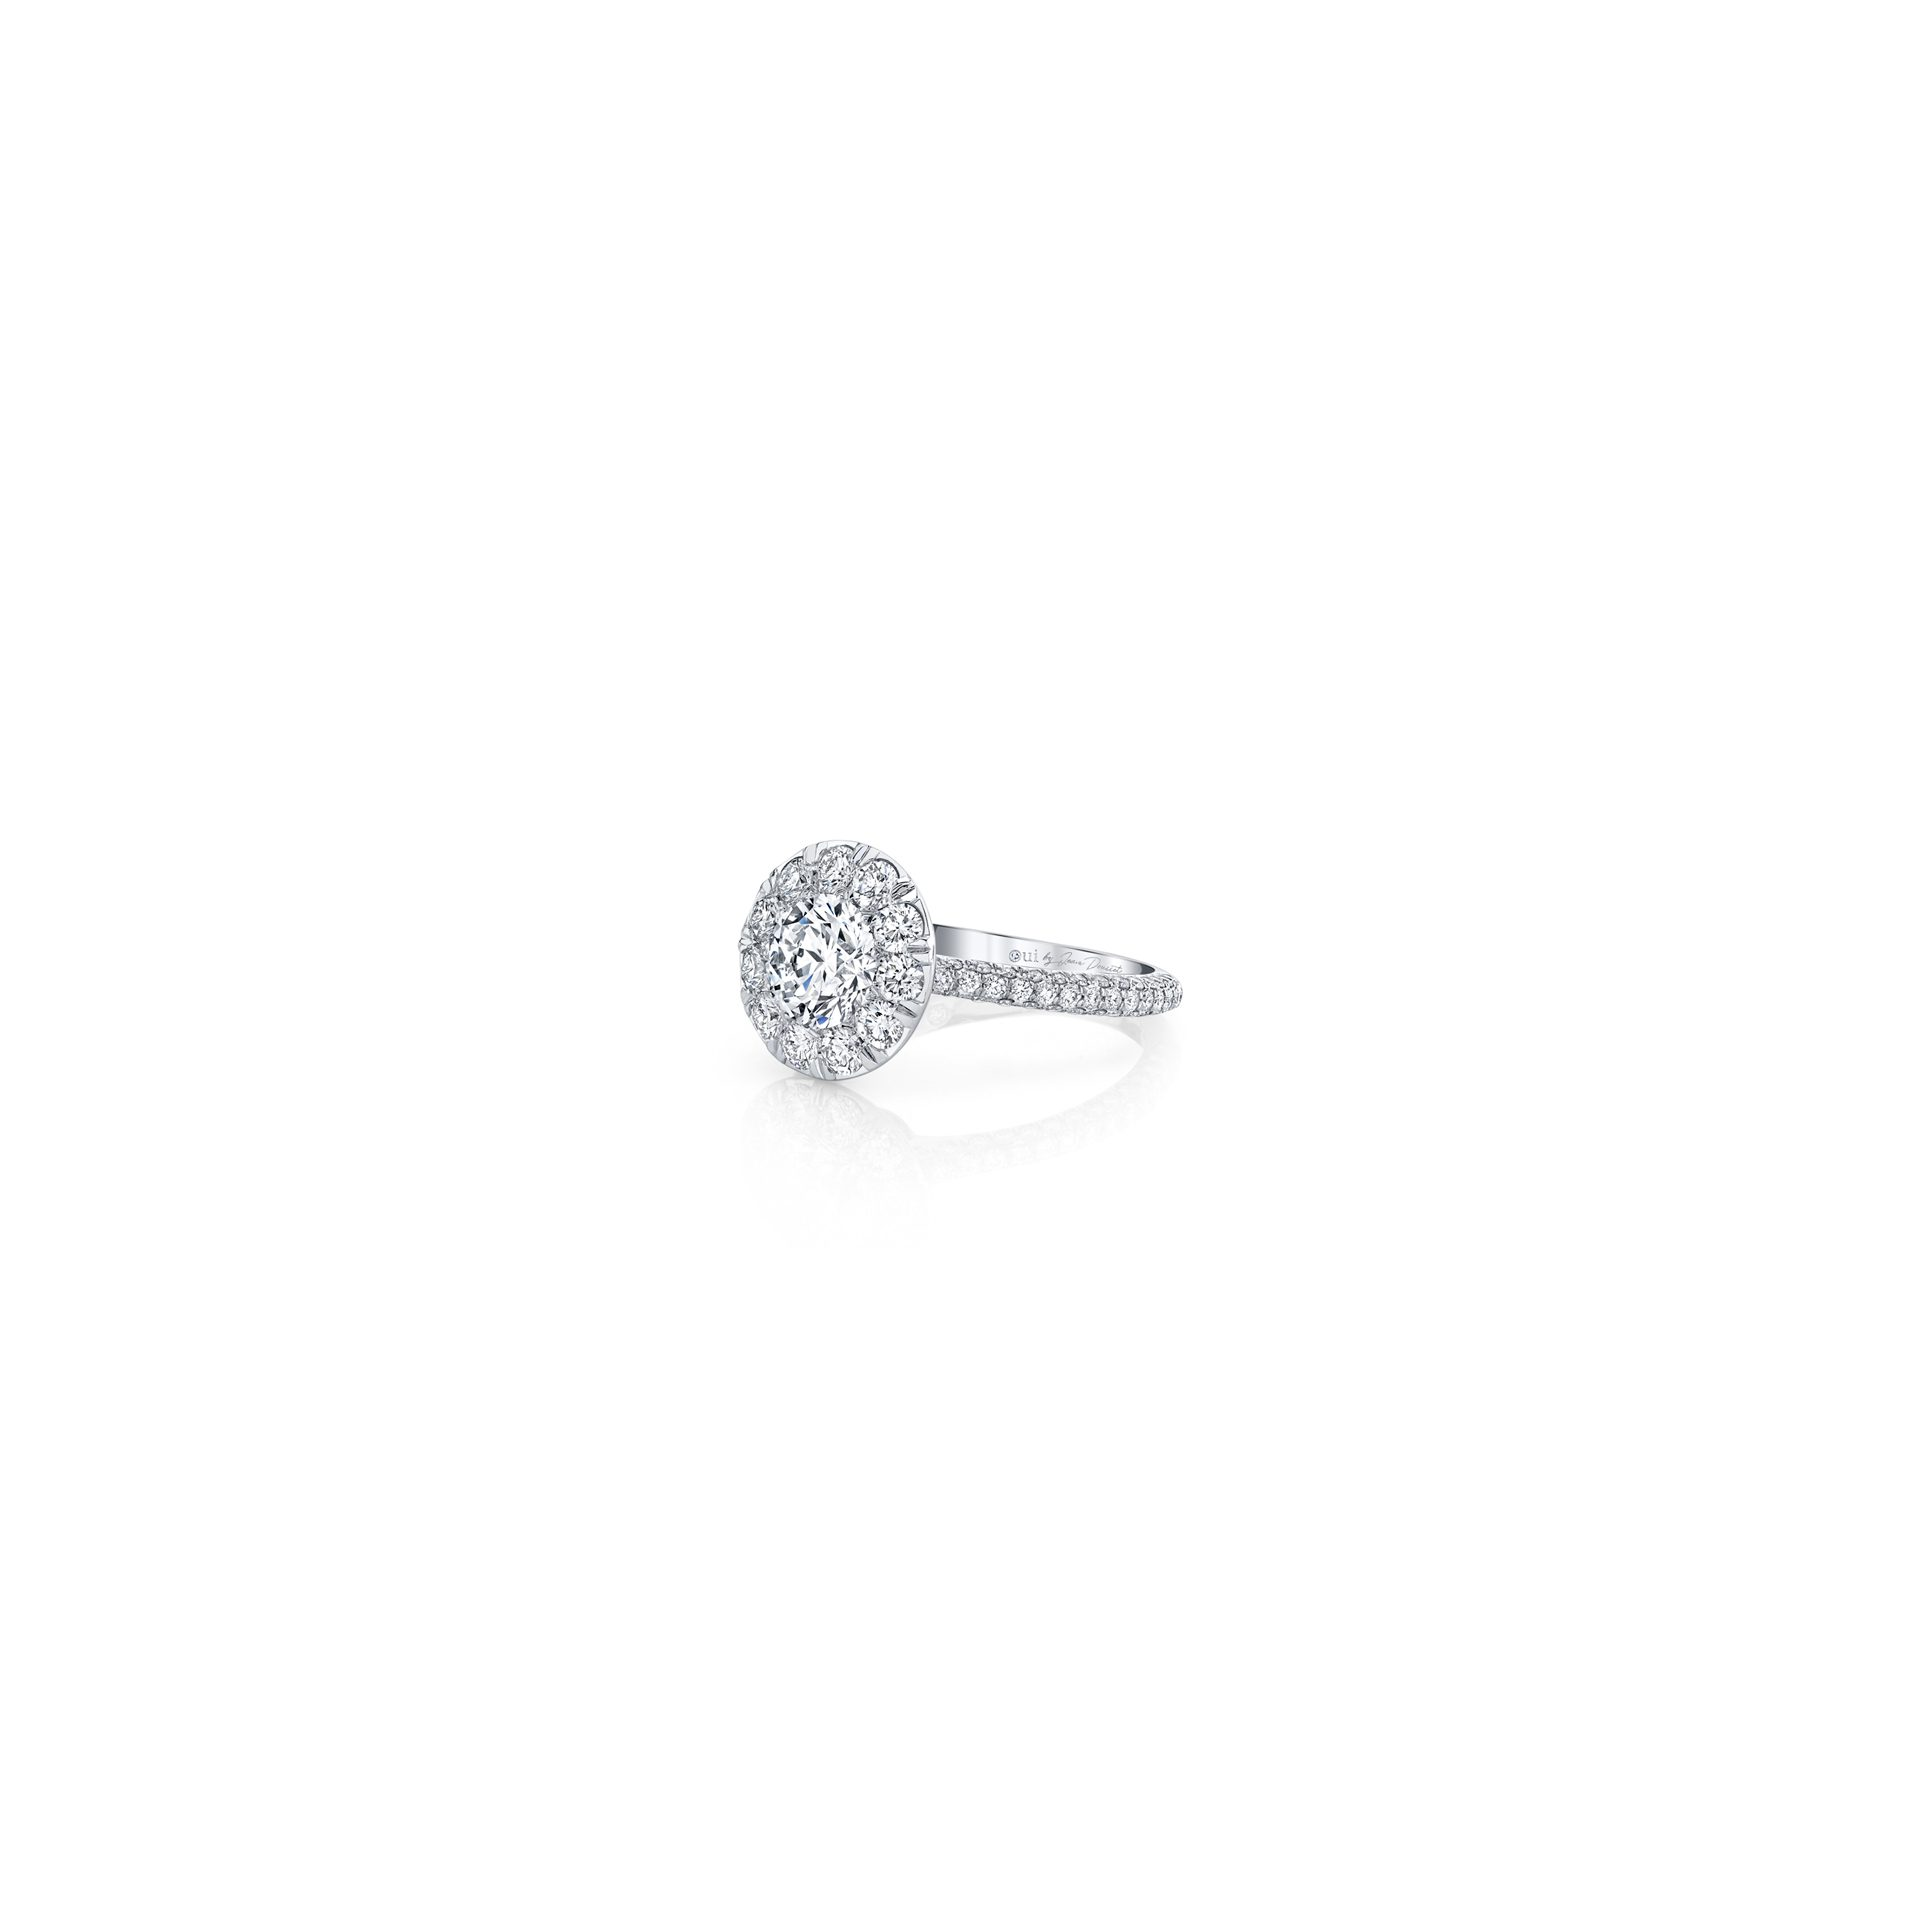 Jacqueline Floating Round Brilliant Seamless Solitaire® Engagement Ring with diamond pavé in 18k White Gold Side View by Oui by Jean Dousset